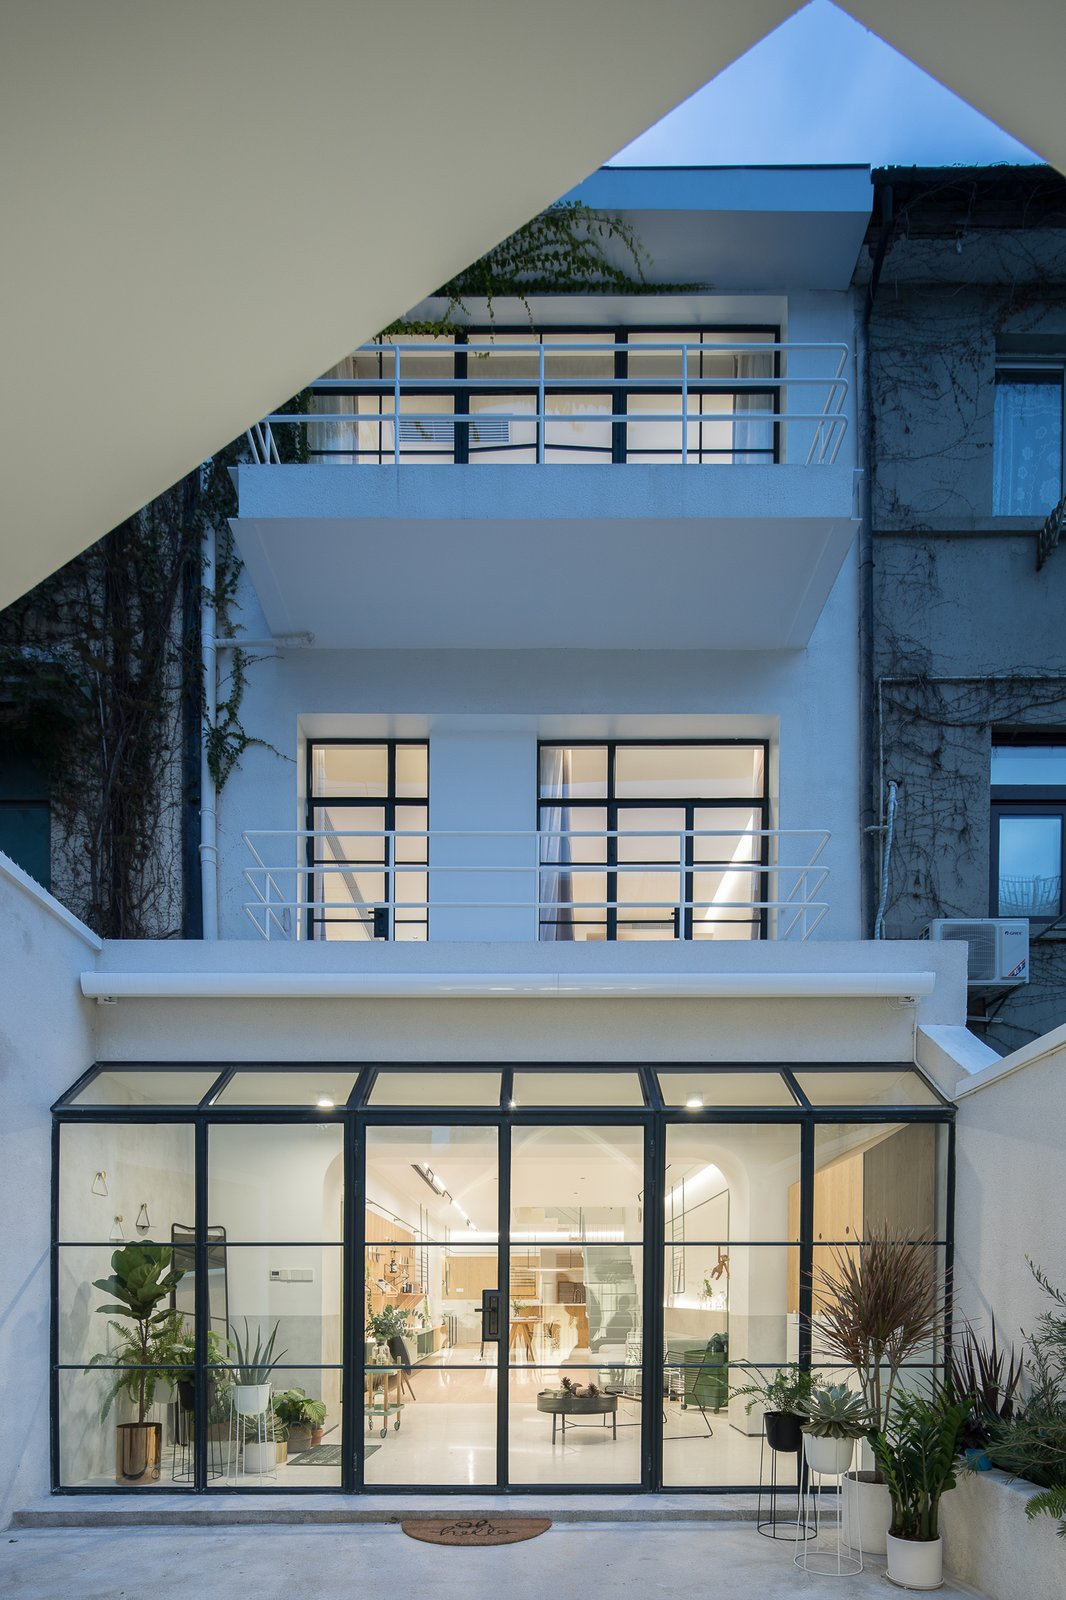 Outdoor, Raised Planters, Small, Vertical, and Back Yard Because of its narrow site and messy interior layout, the original apartment was dark and cramped.  Best Outdoor Vertical Raised Planters Photos from A Sunny Stairwell Brings Light to an Old Shanghai Dwelling